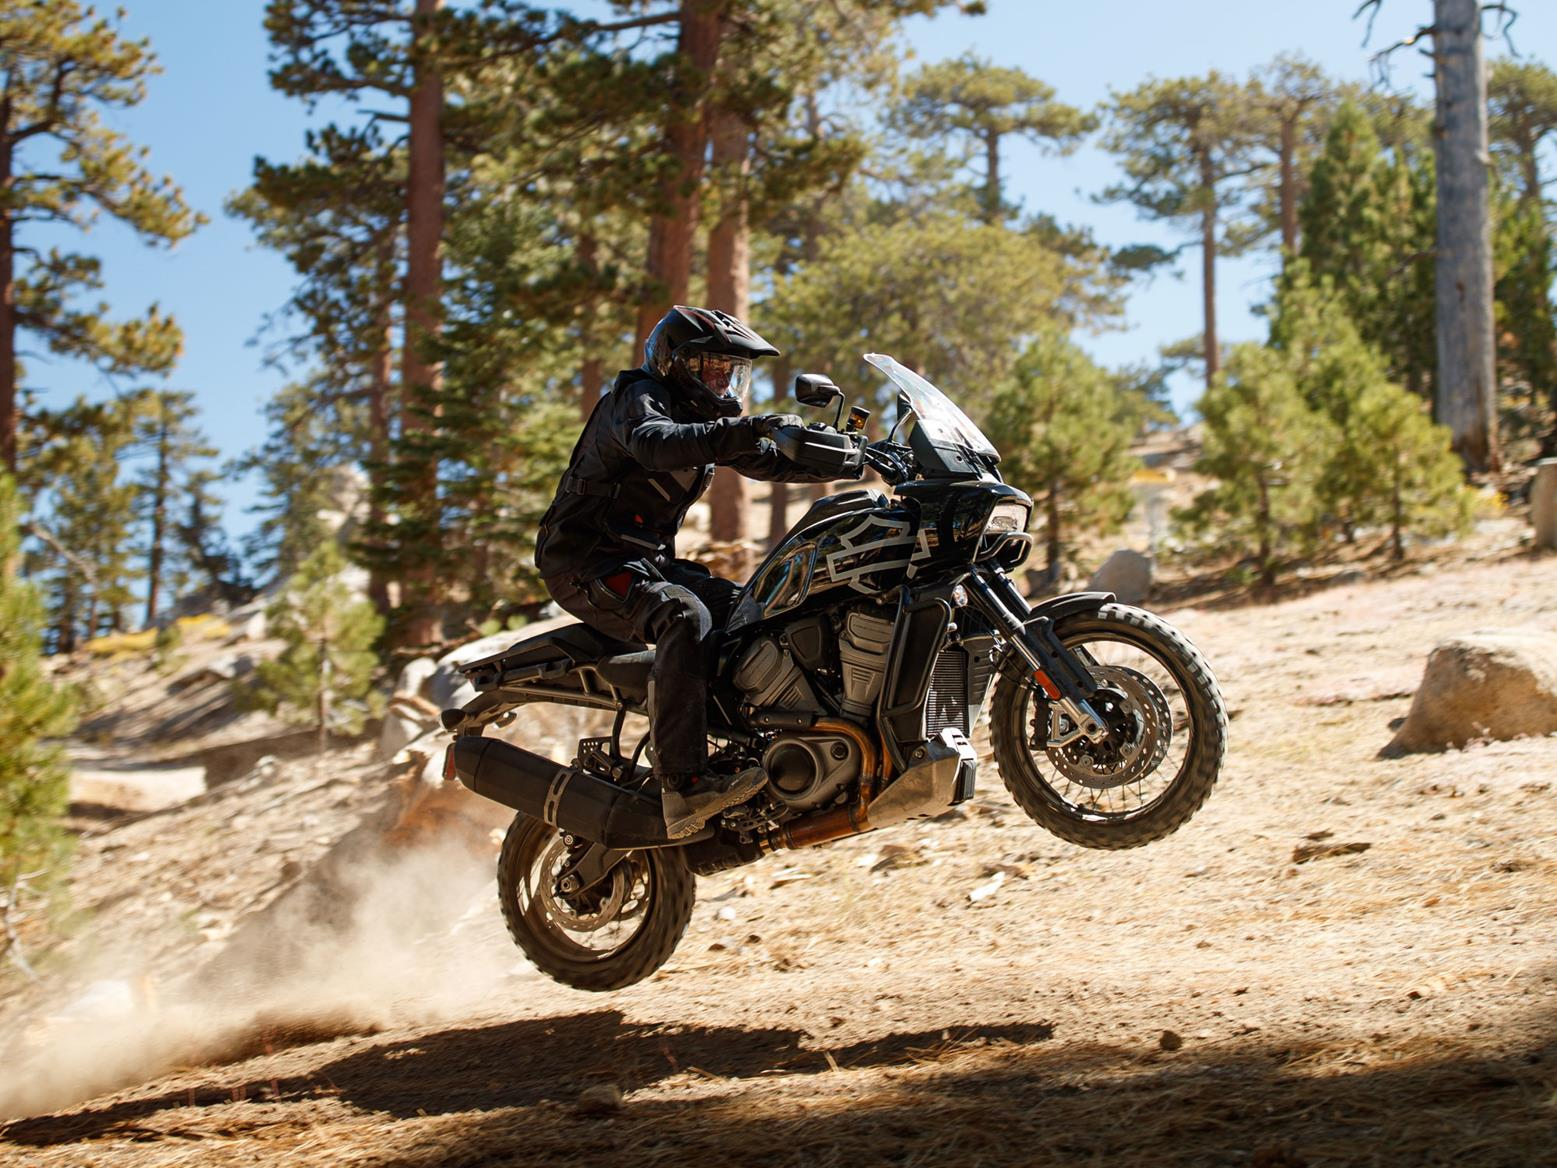 This is the Harley-Davidson Pan America jumping. We can imagine it made a bit of a bump when it came down again